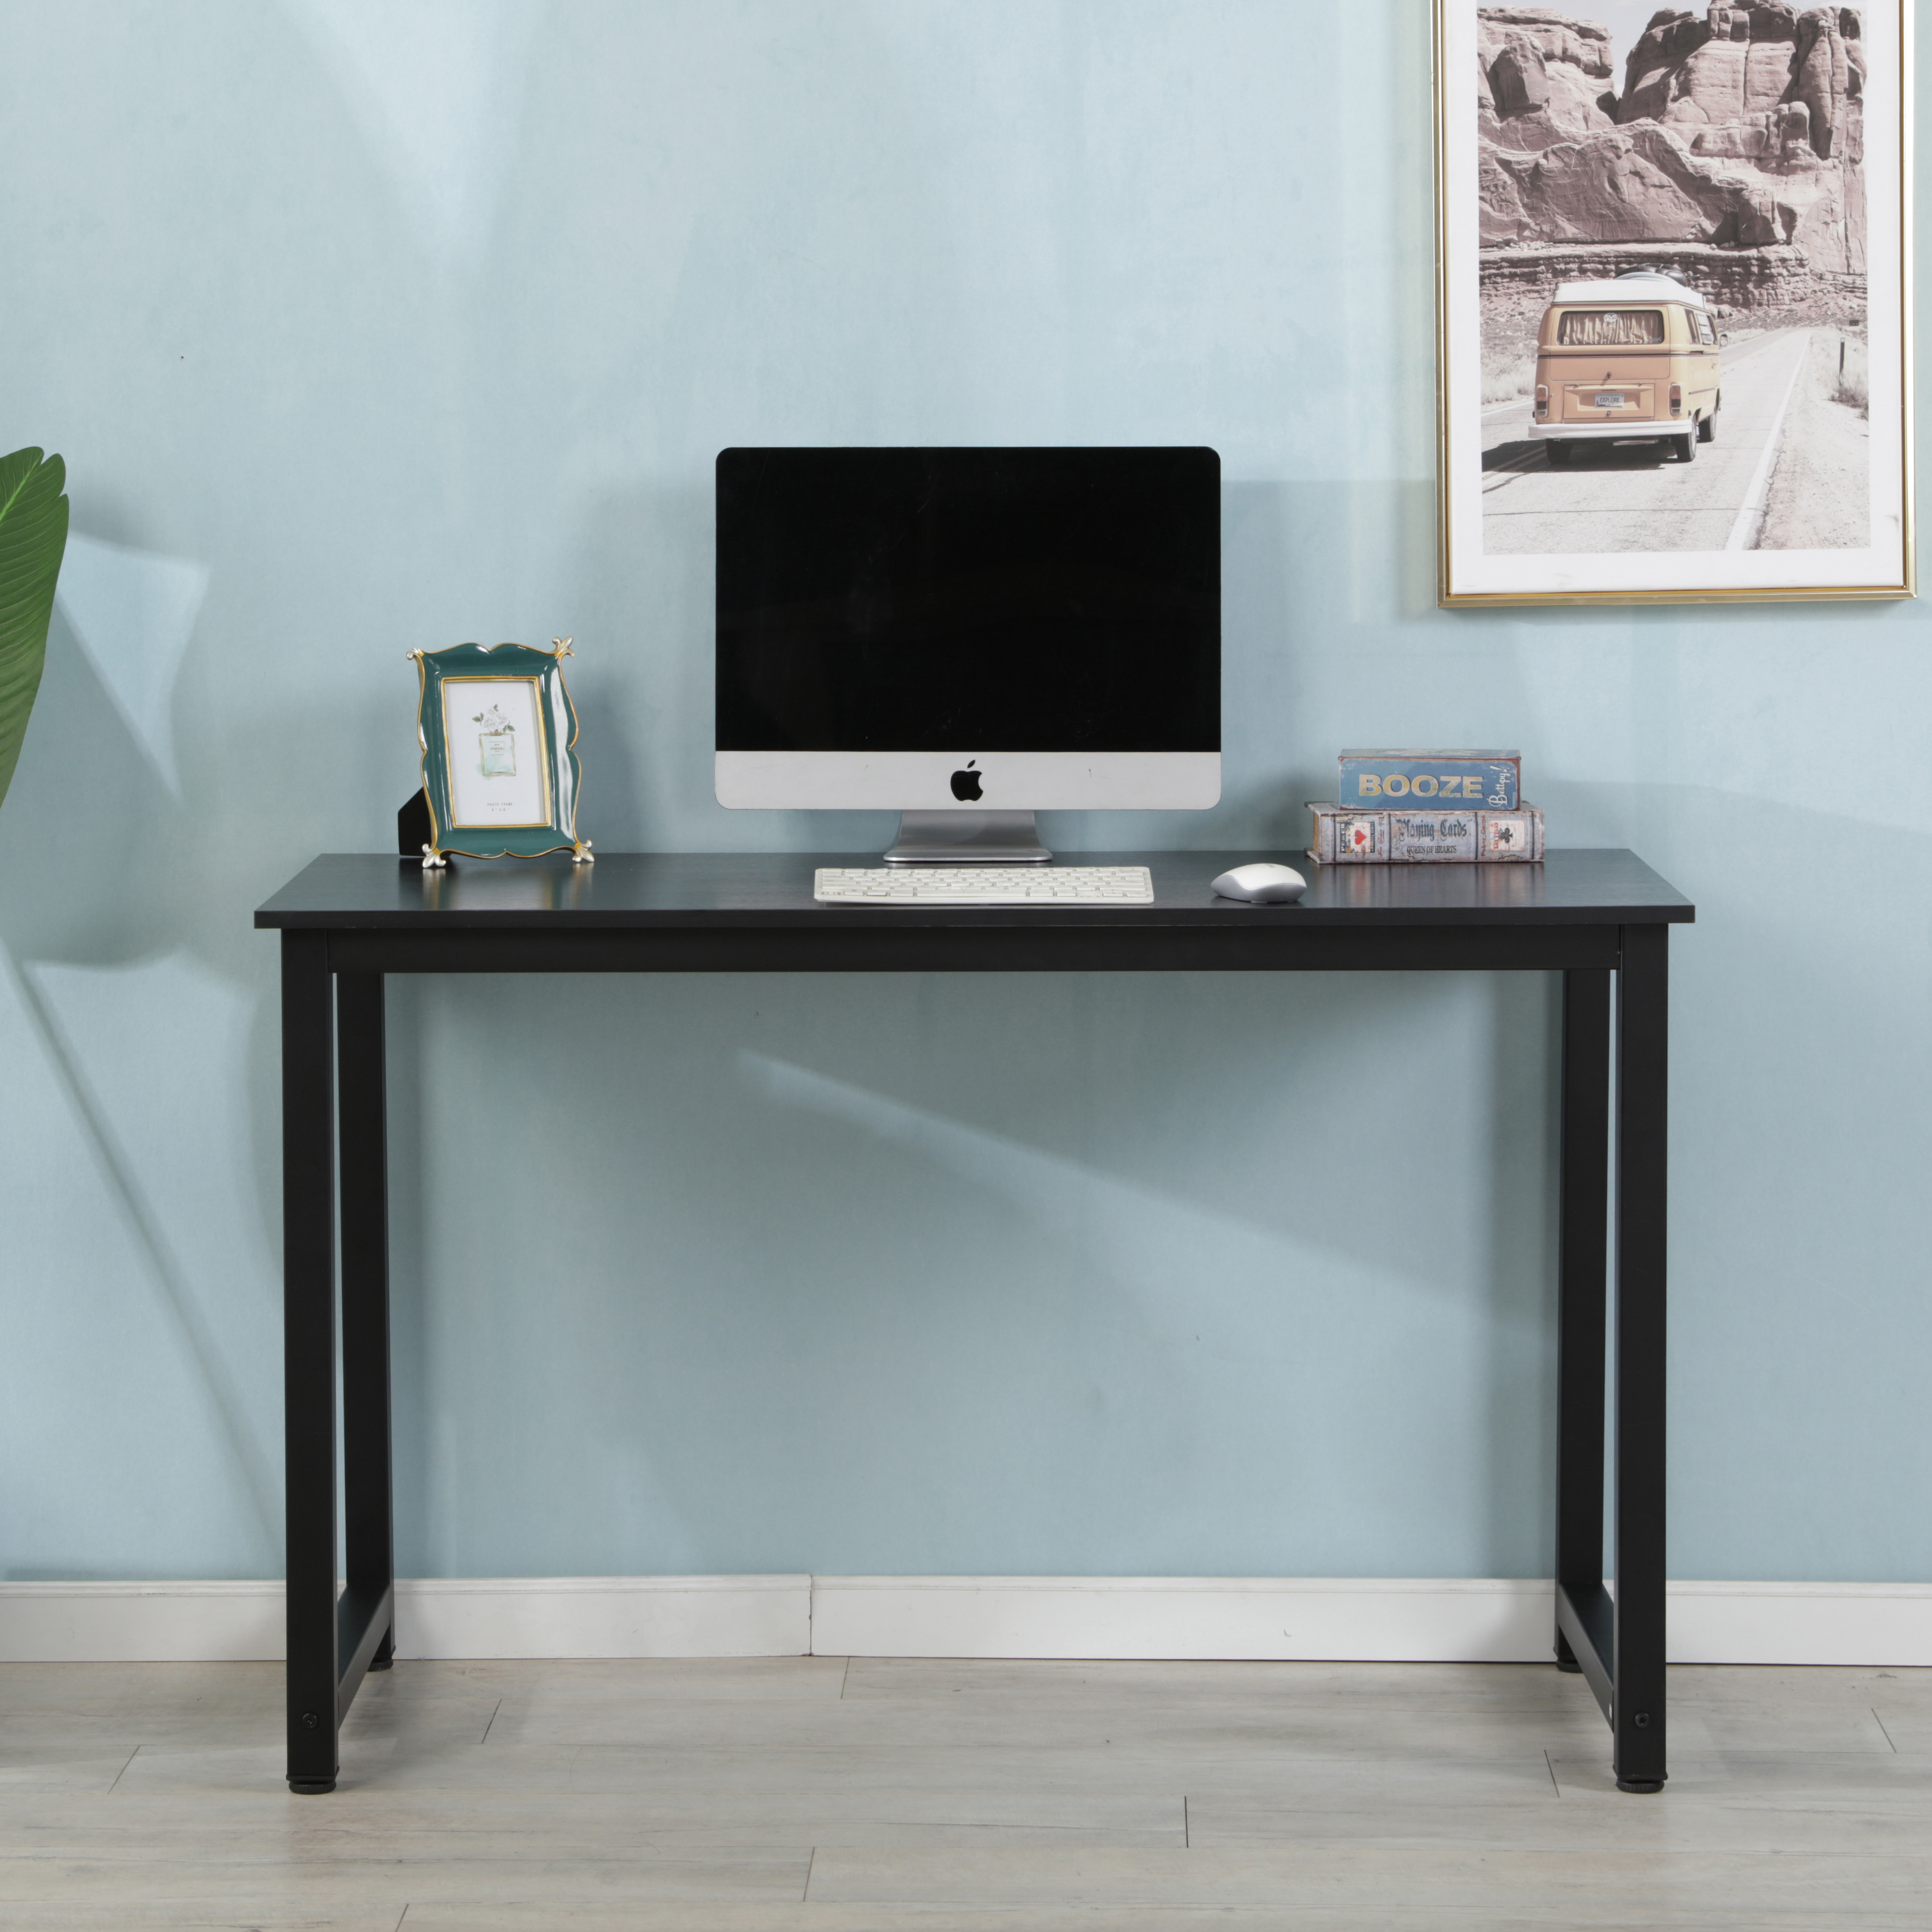 Details about  /Multifunctional Desk Top Laminate Top Office Room Table Top Rectangular Black